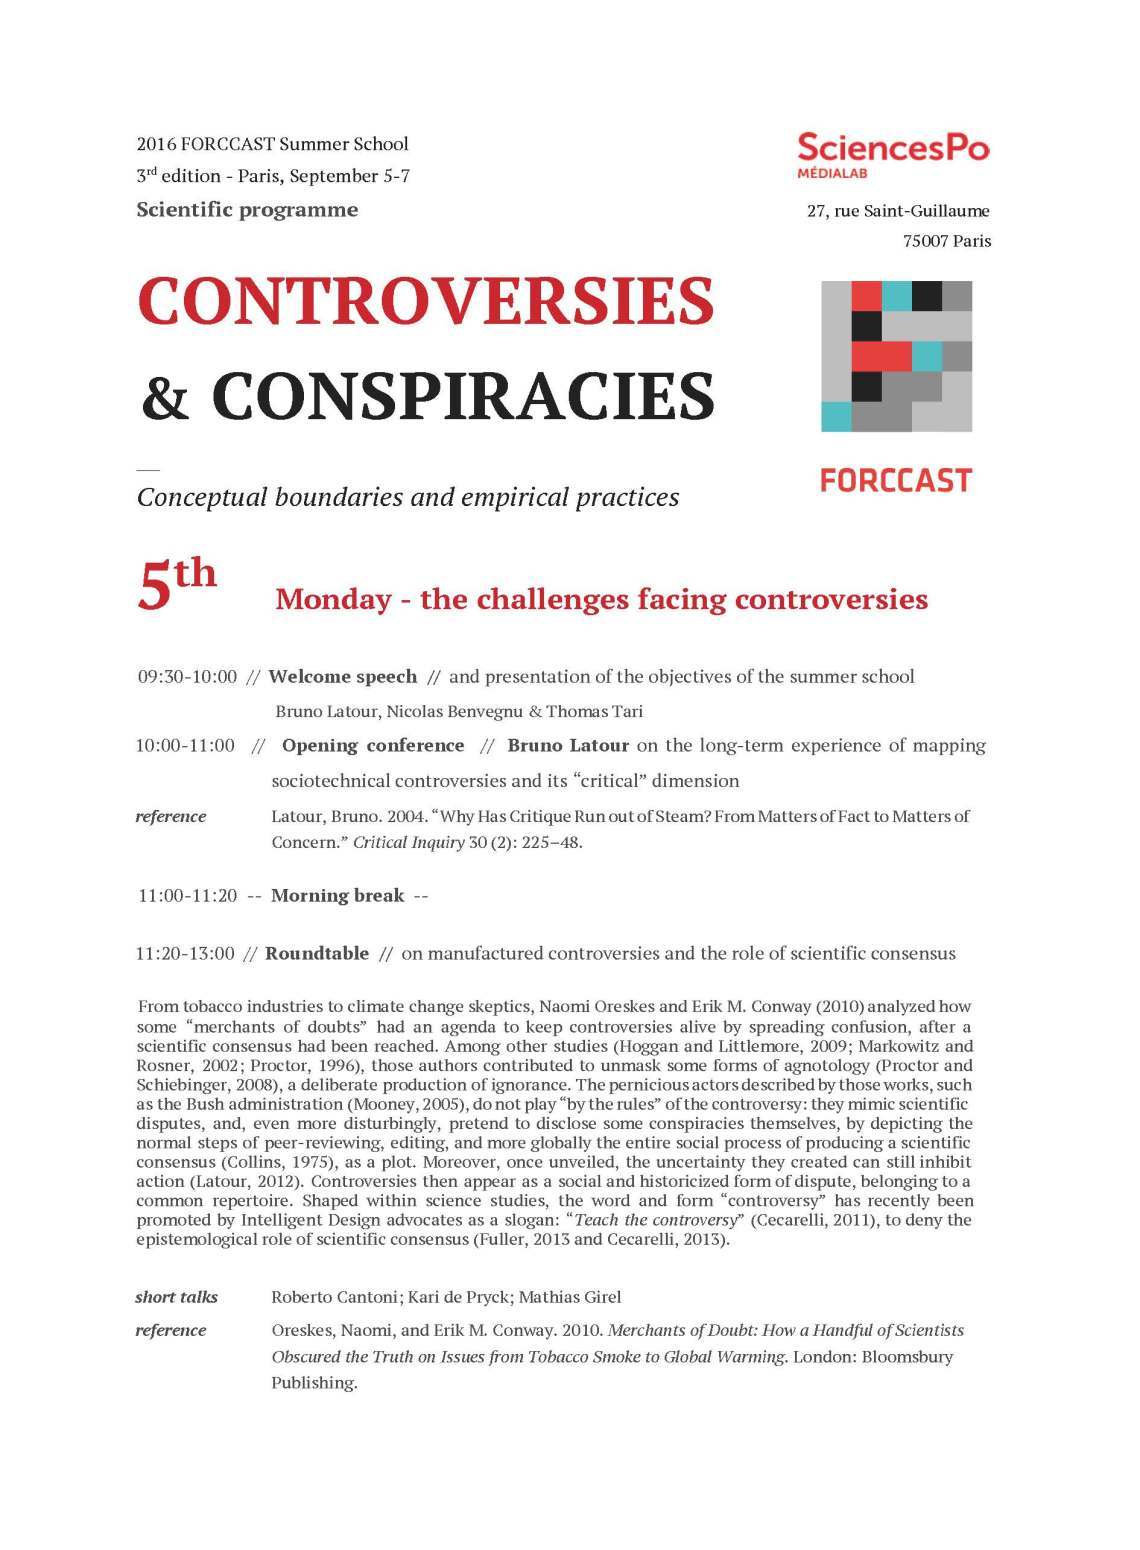 programme-summer-school-on-controversies-and-conspiracies_page_1